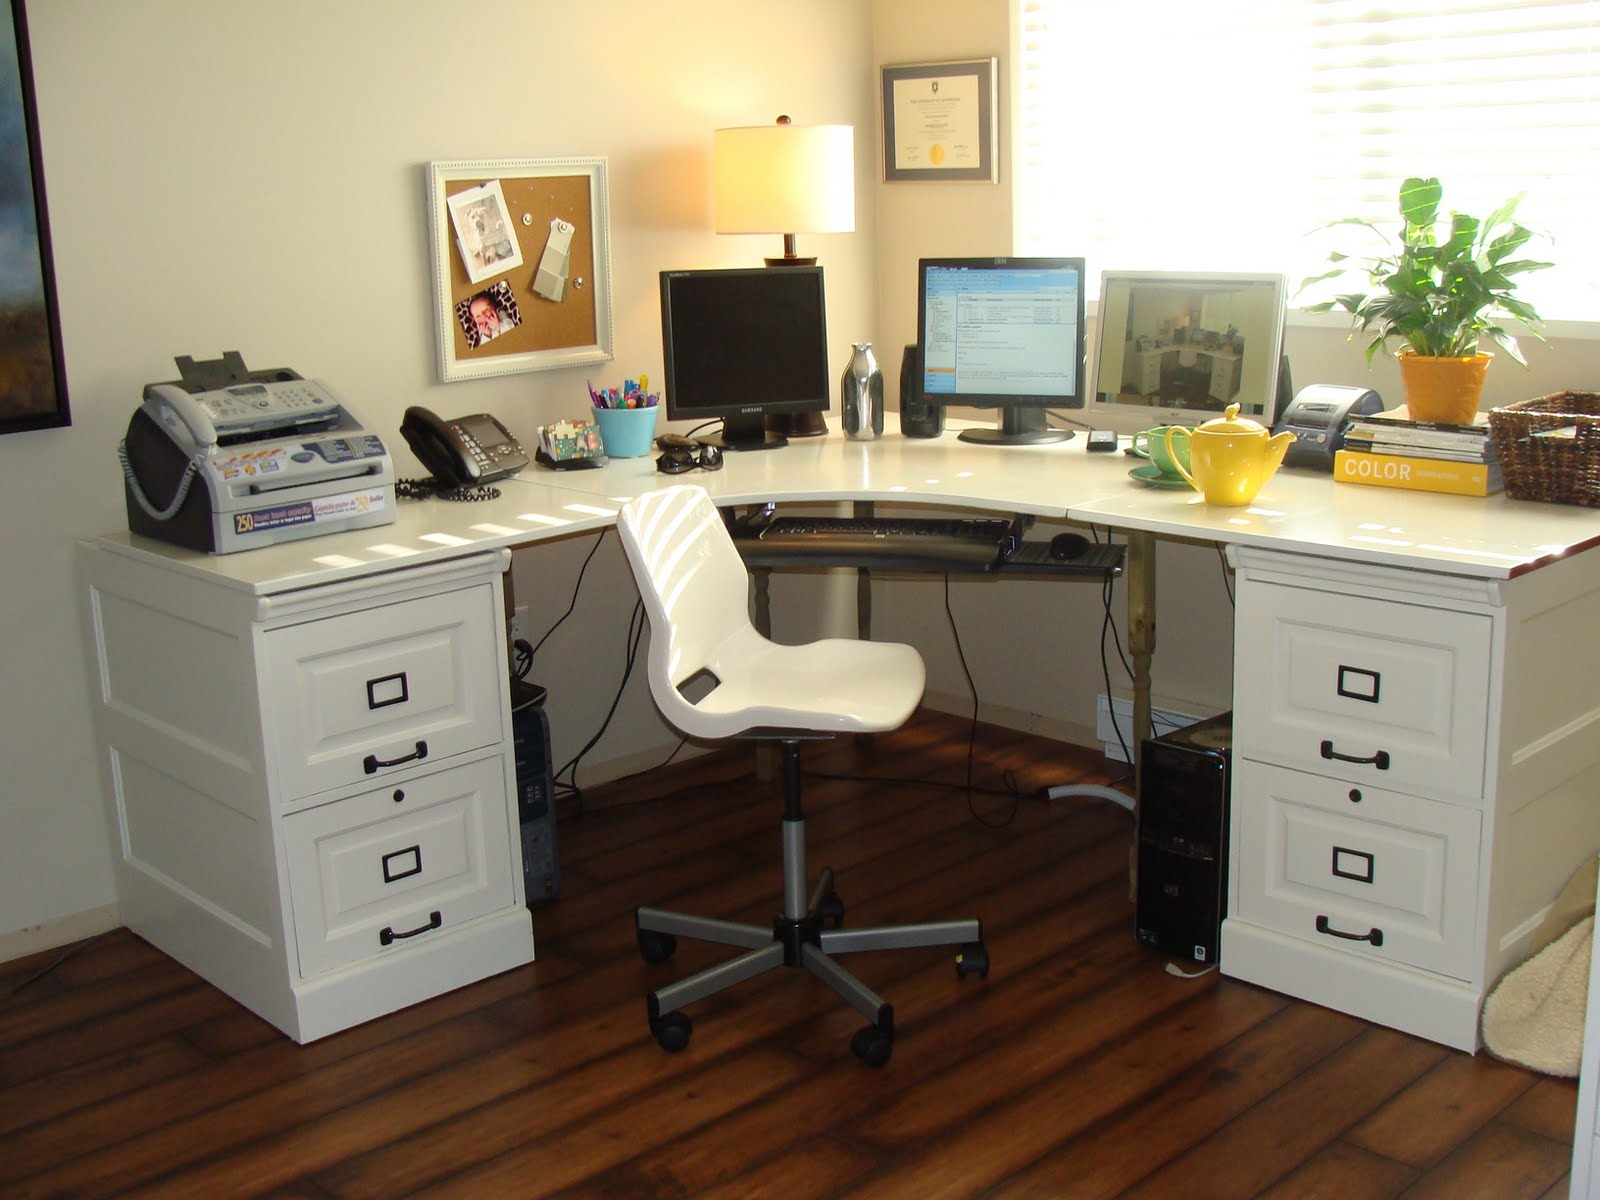 Small drawer unit and simple chairperson in cool office desk design - Small Drawer Unit And Simple Chairperson In Cool Office Desk Design 54